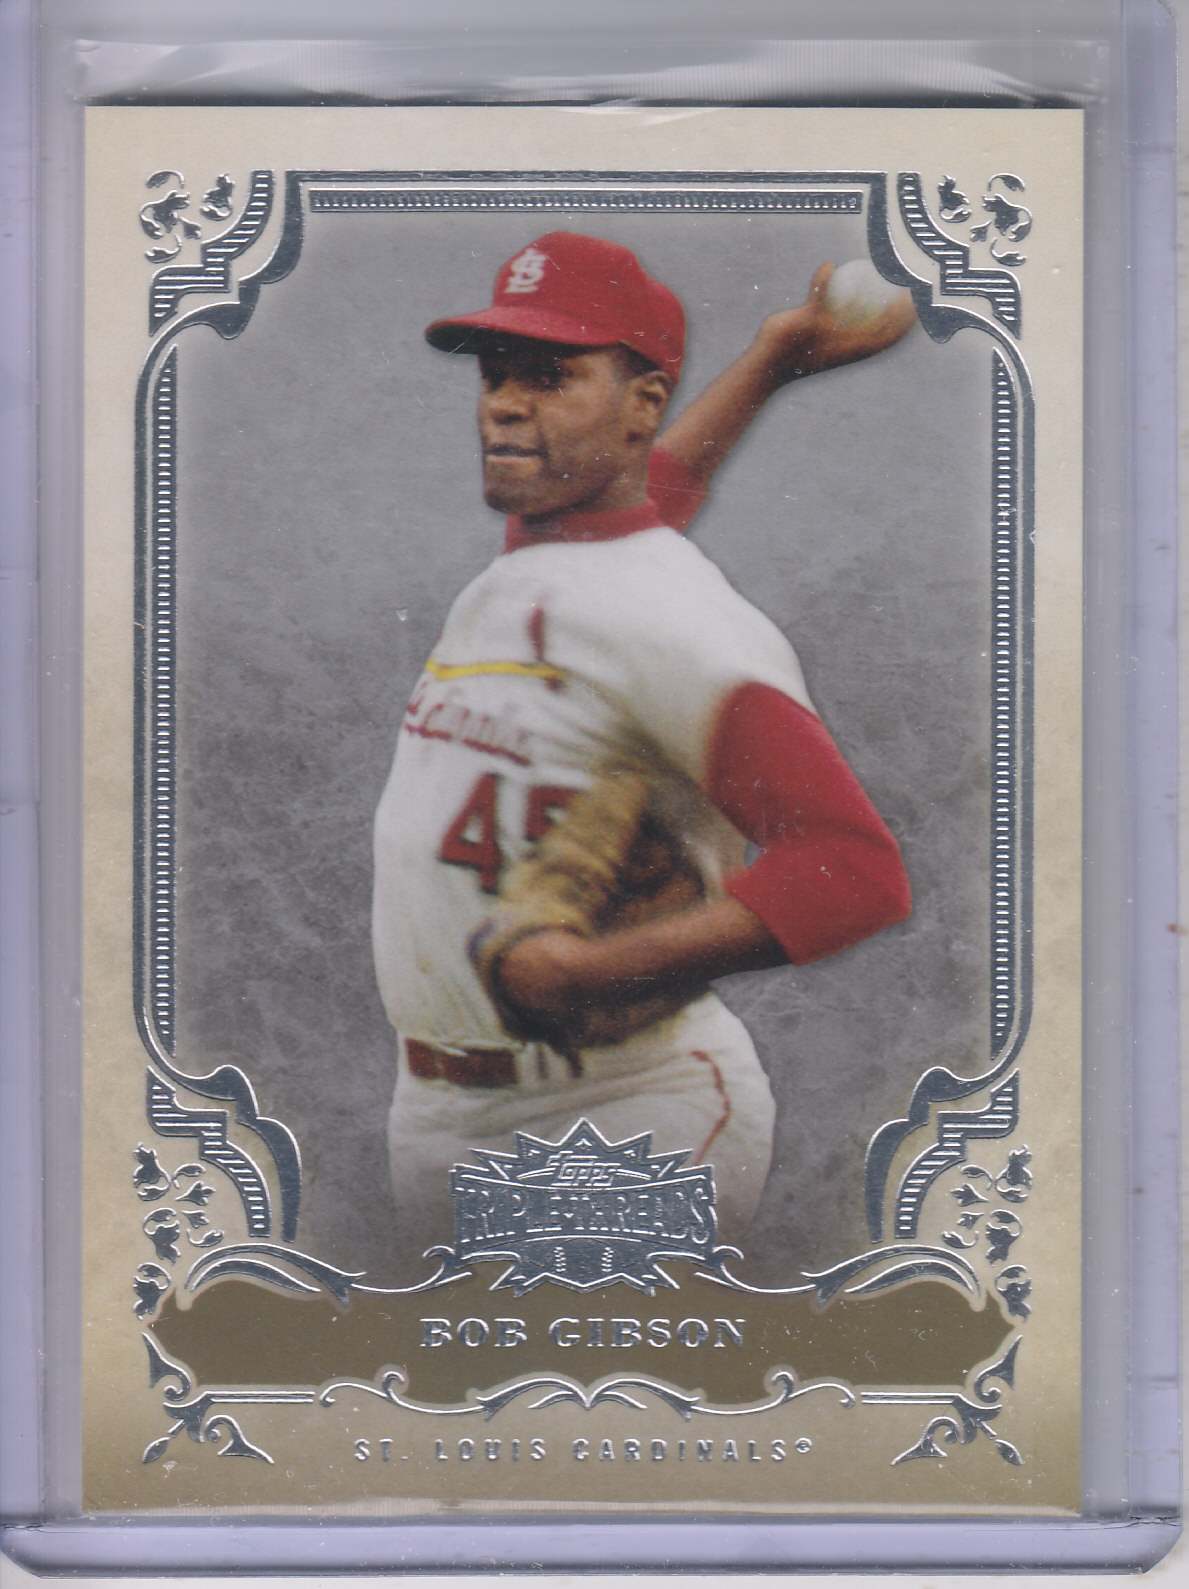 2013 Topps Triple Threads #17 Bob Gibson